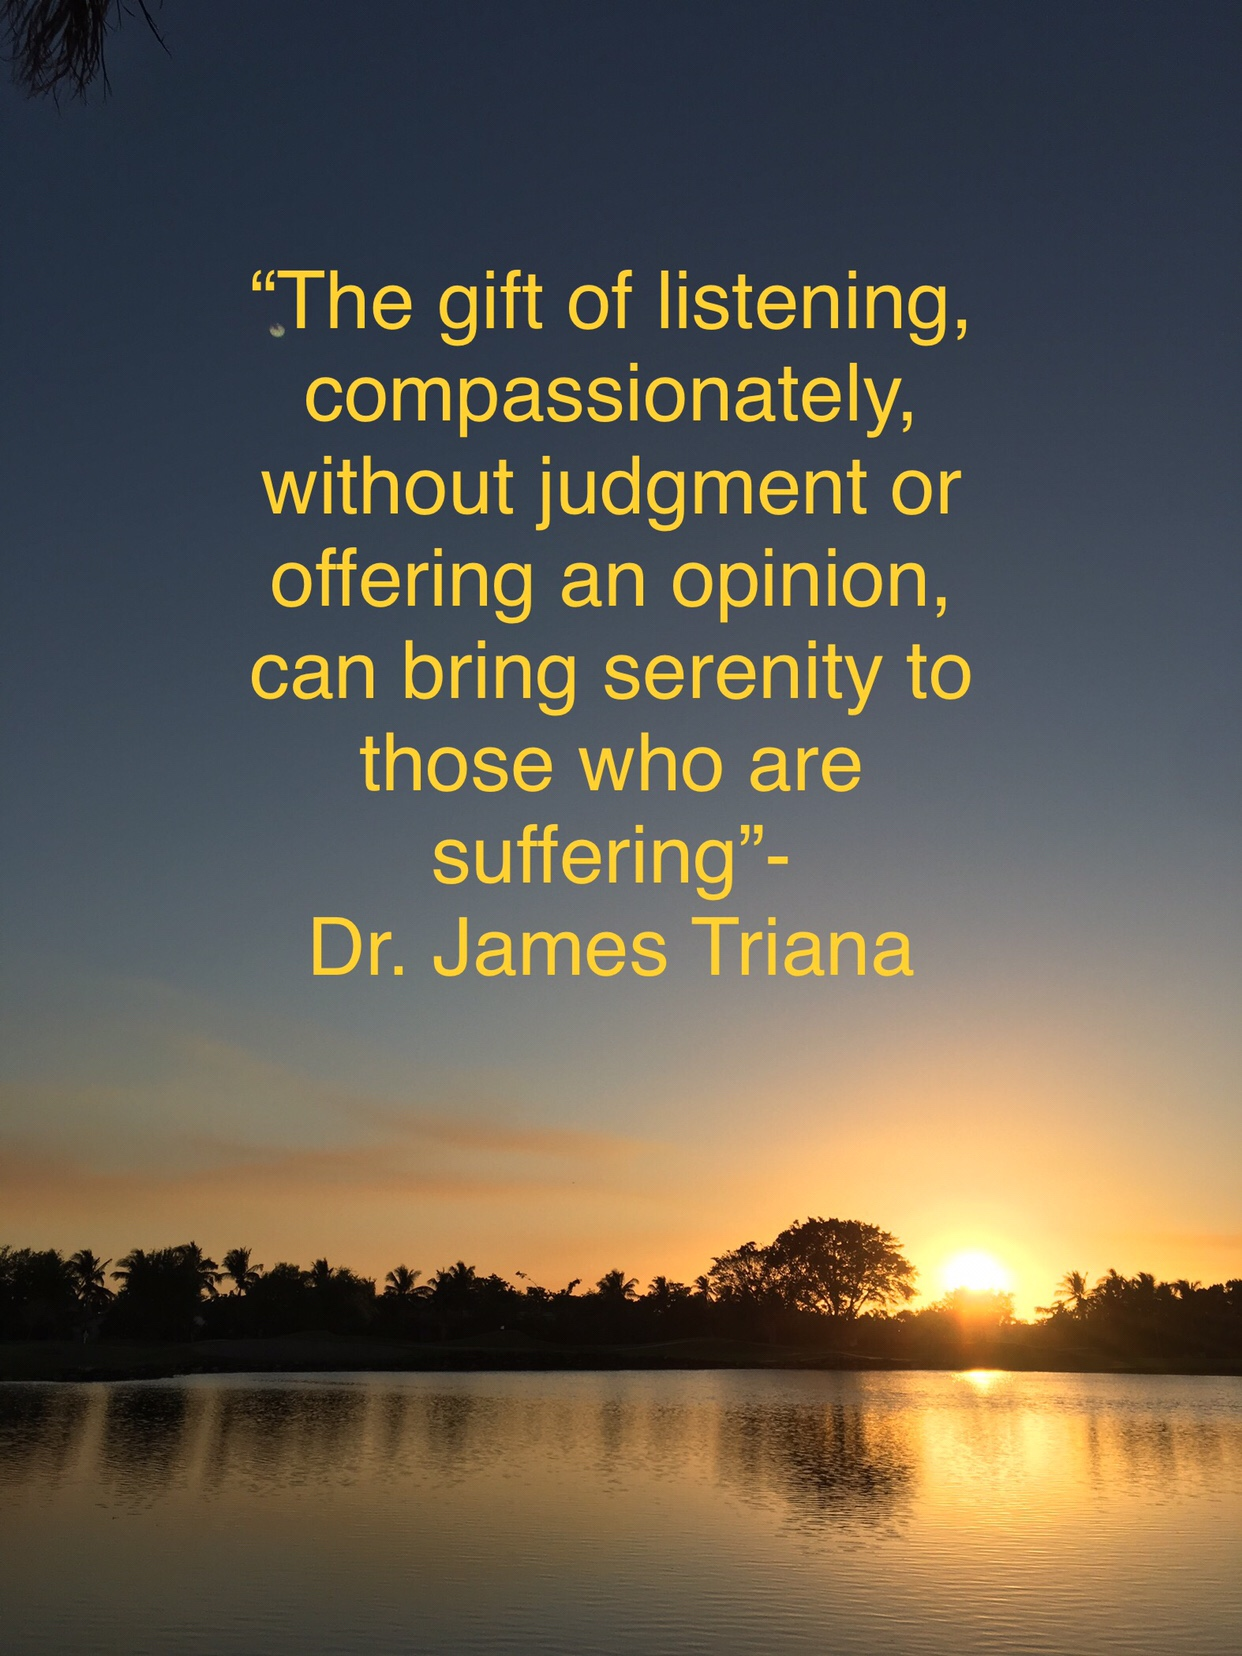 What happens when you use good listening skills?